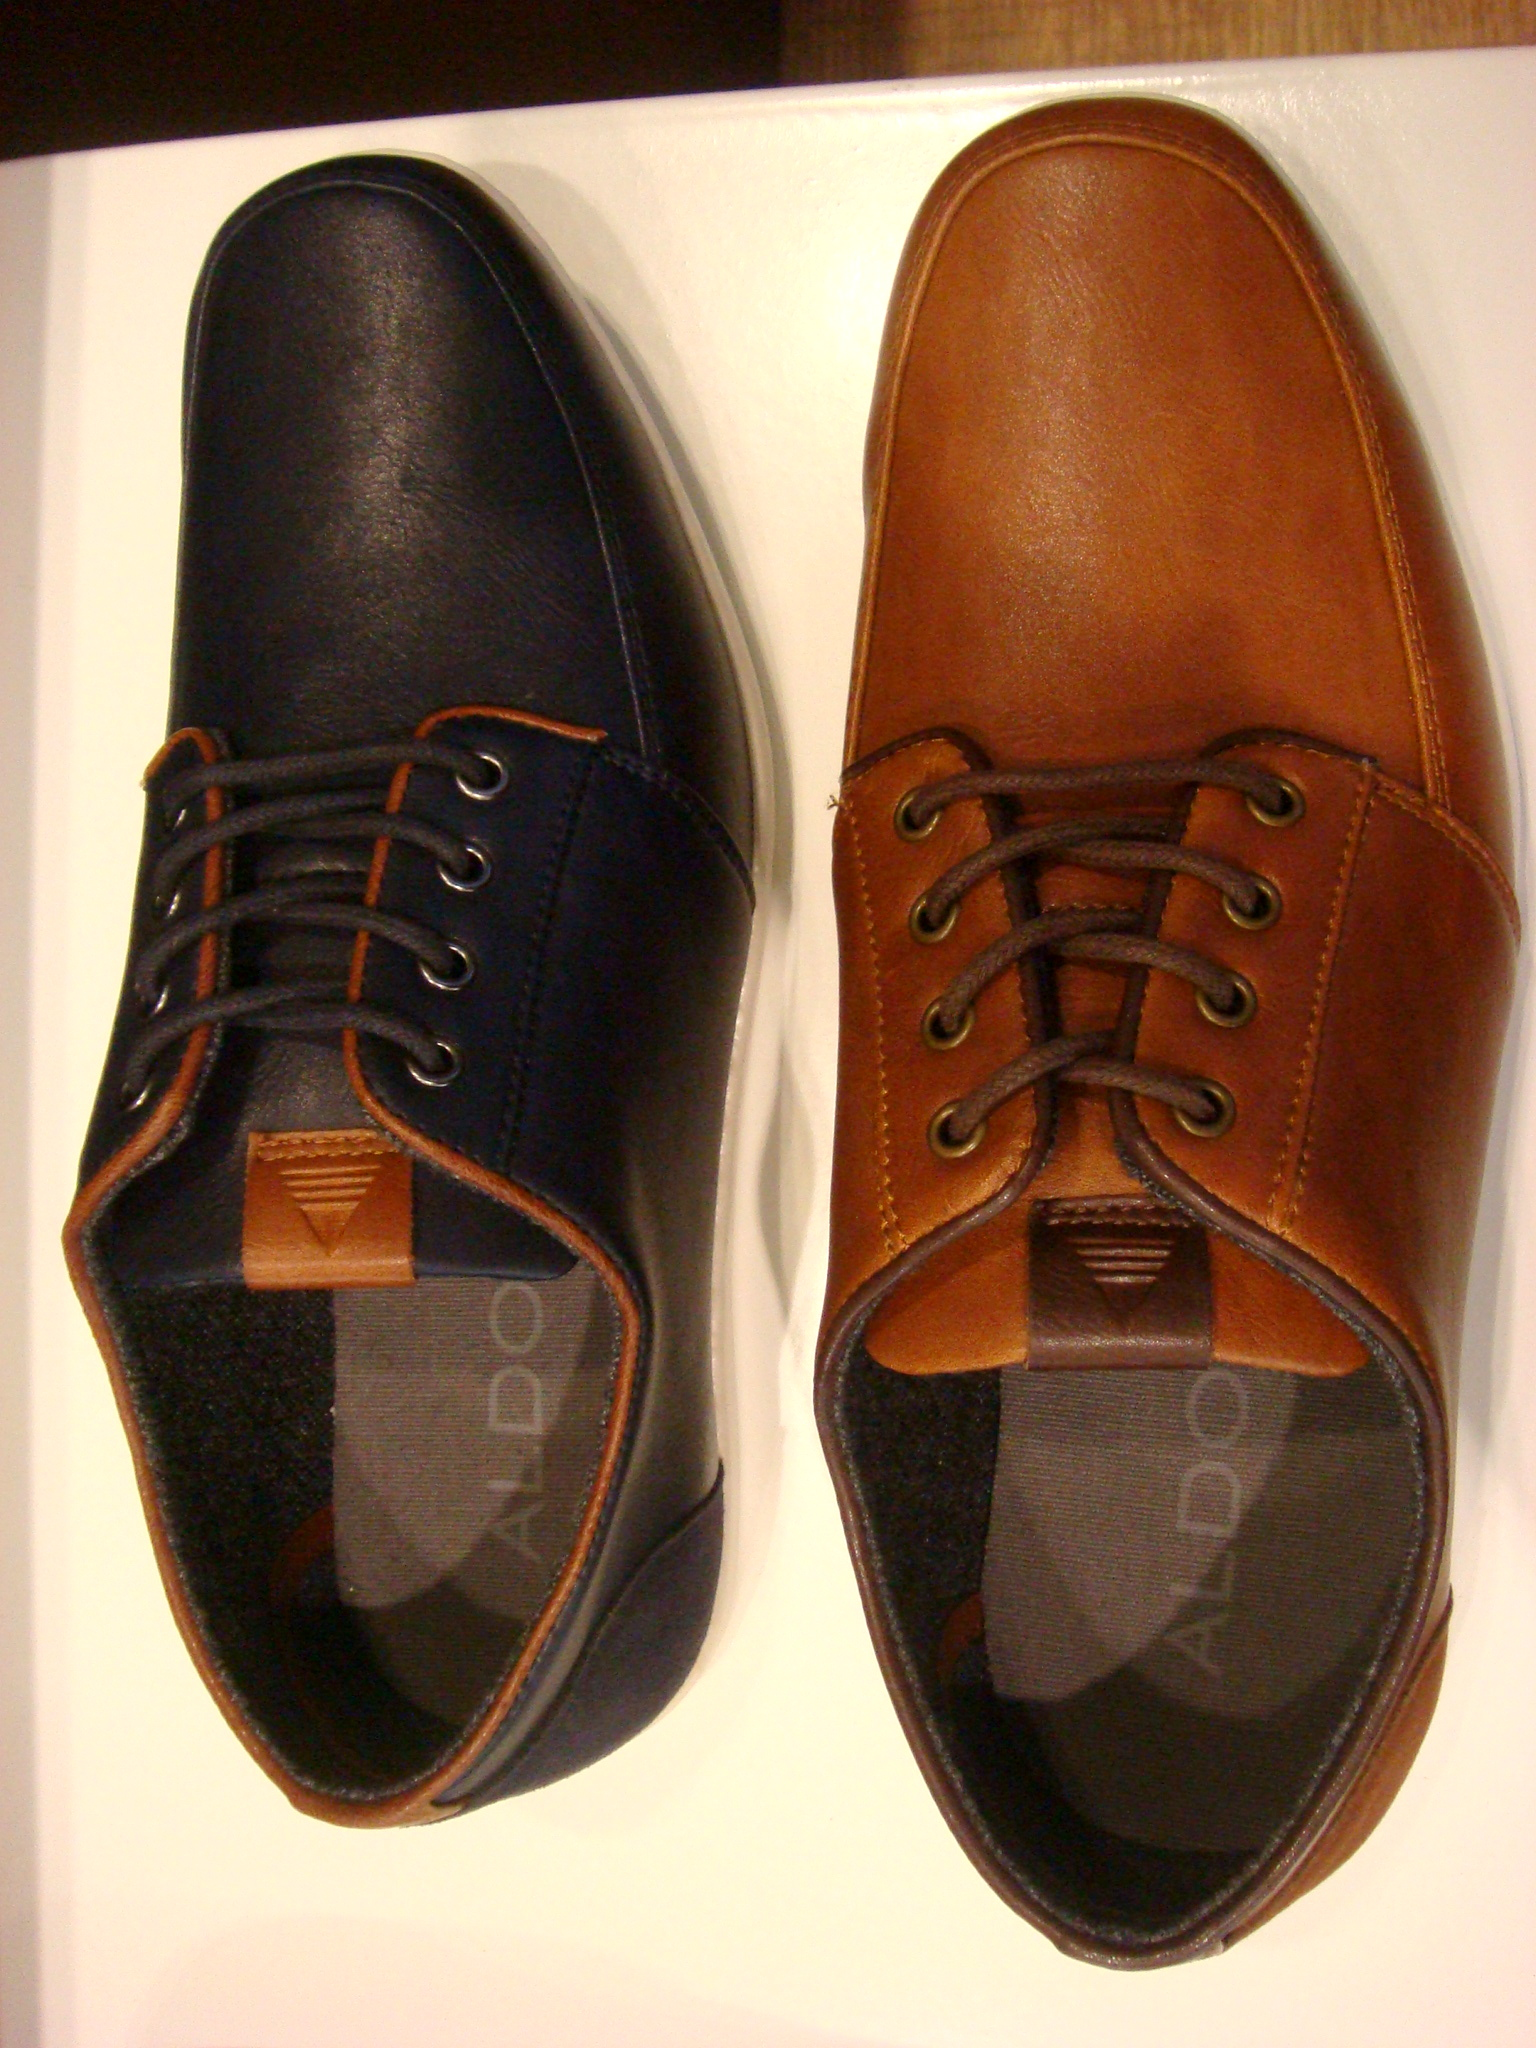 Mens shoes from Aldo FW 2014